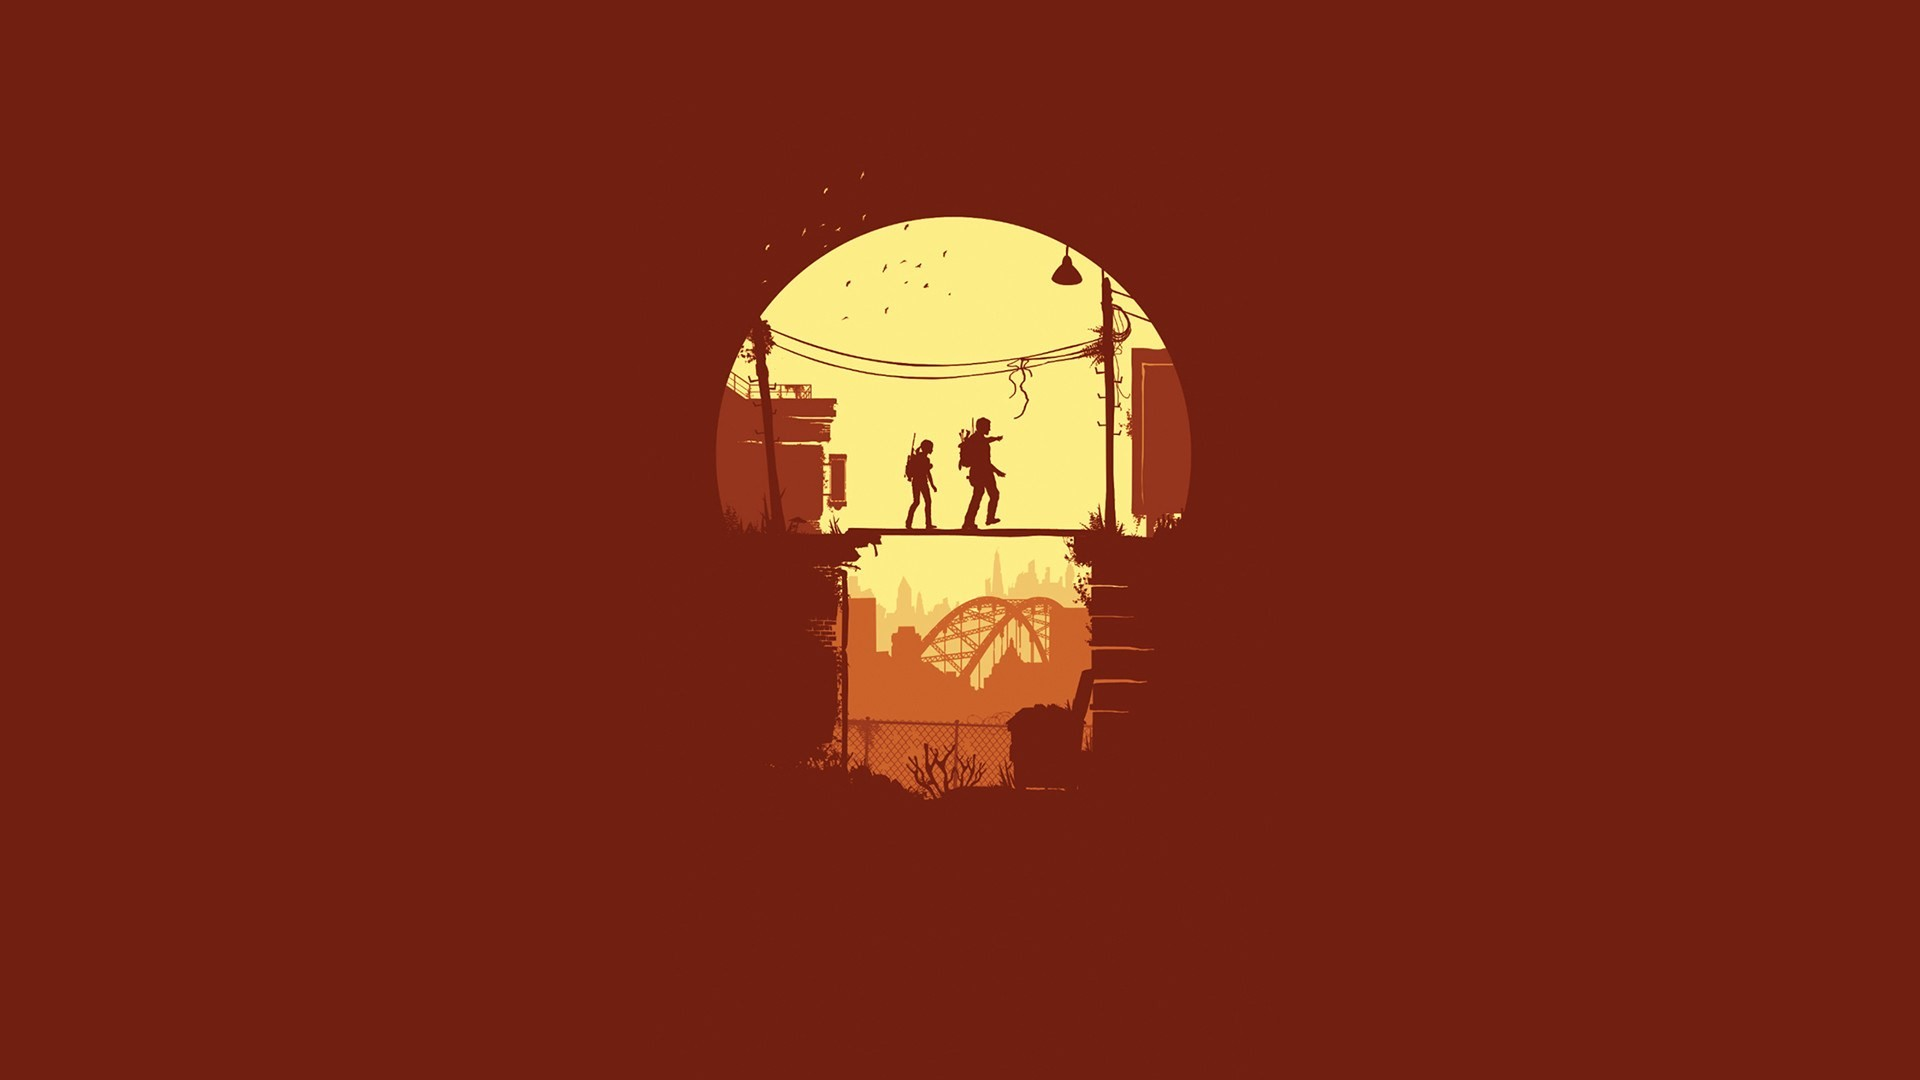 minimalist game wallpapers minimalist game wallpapers